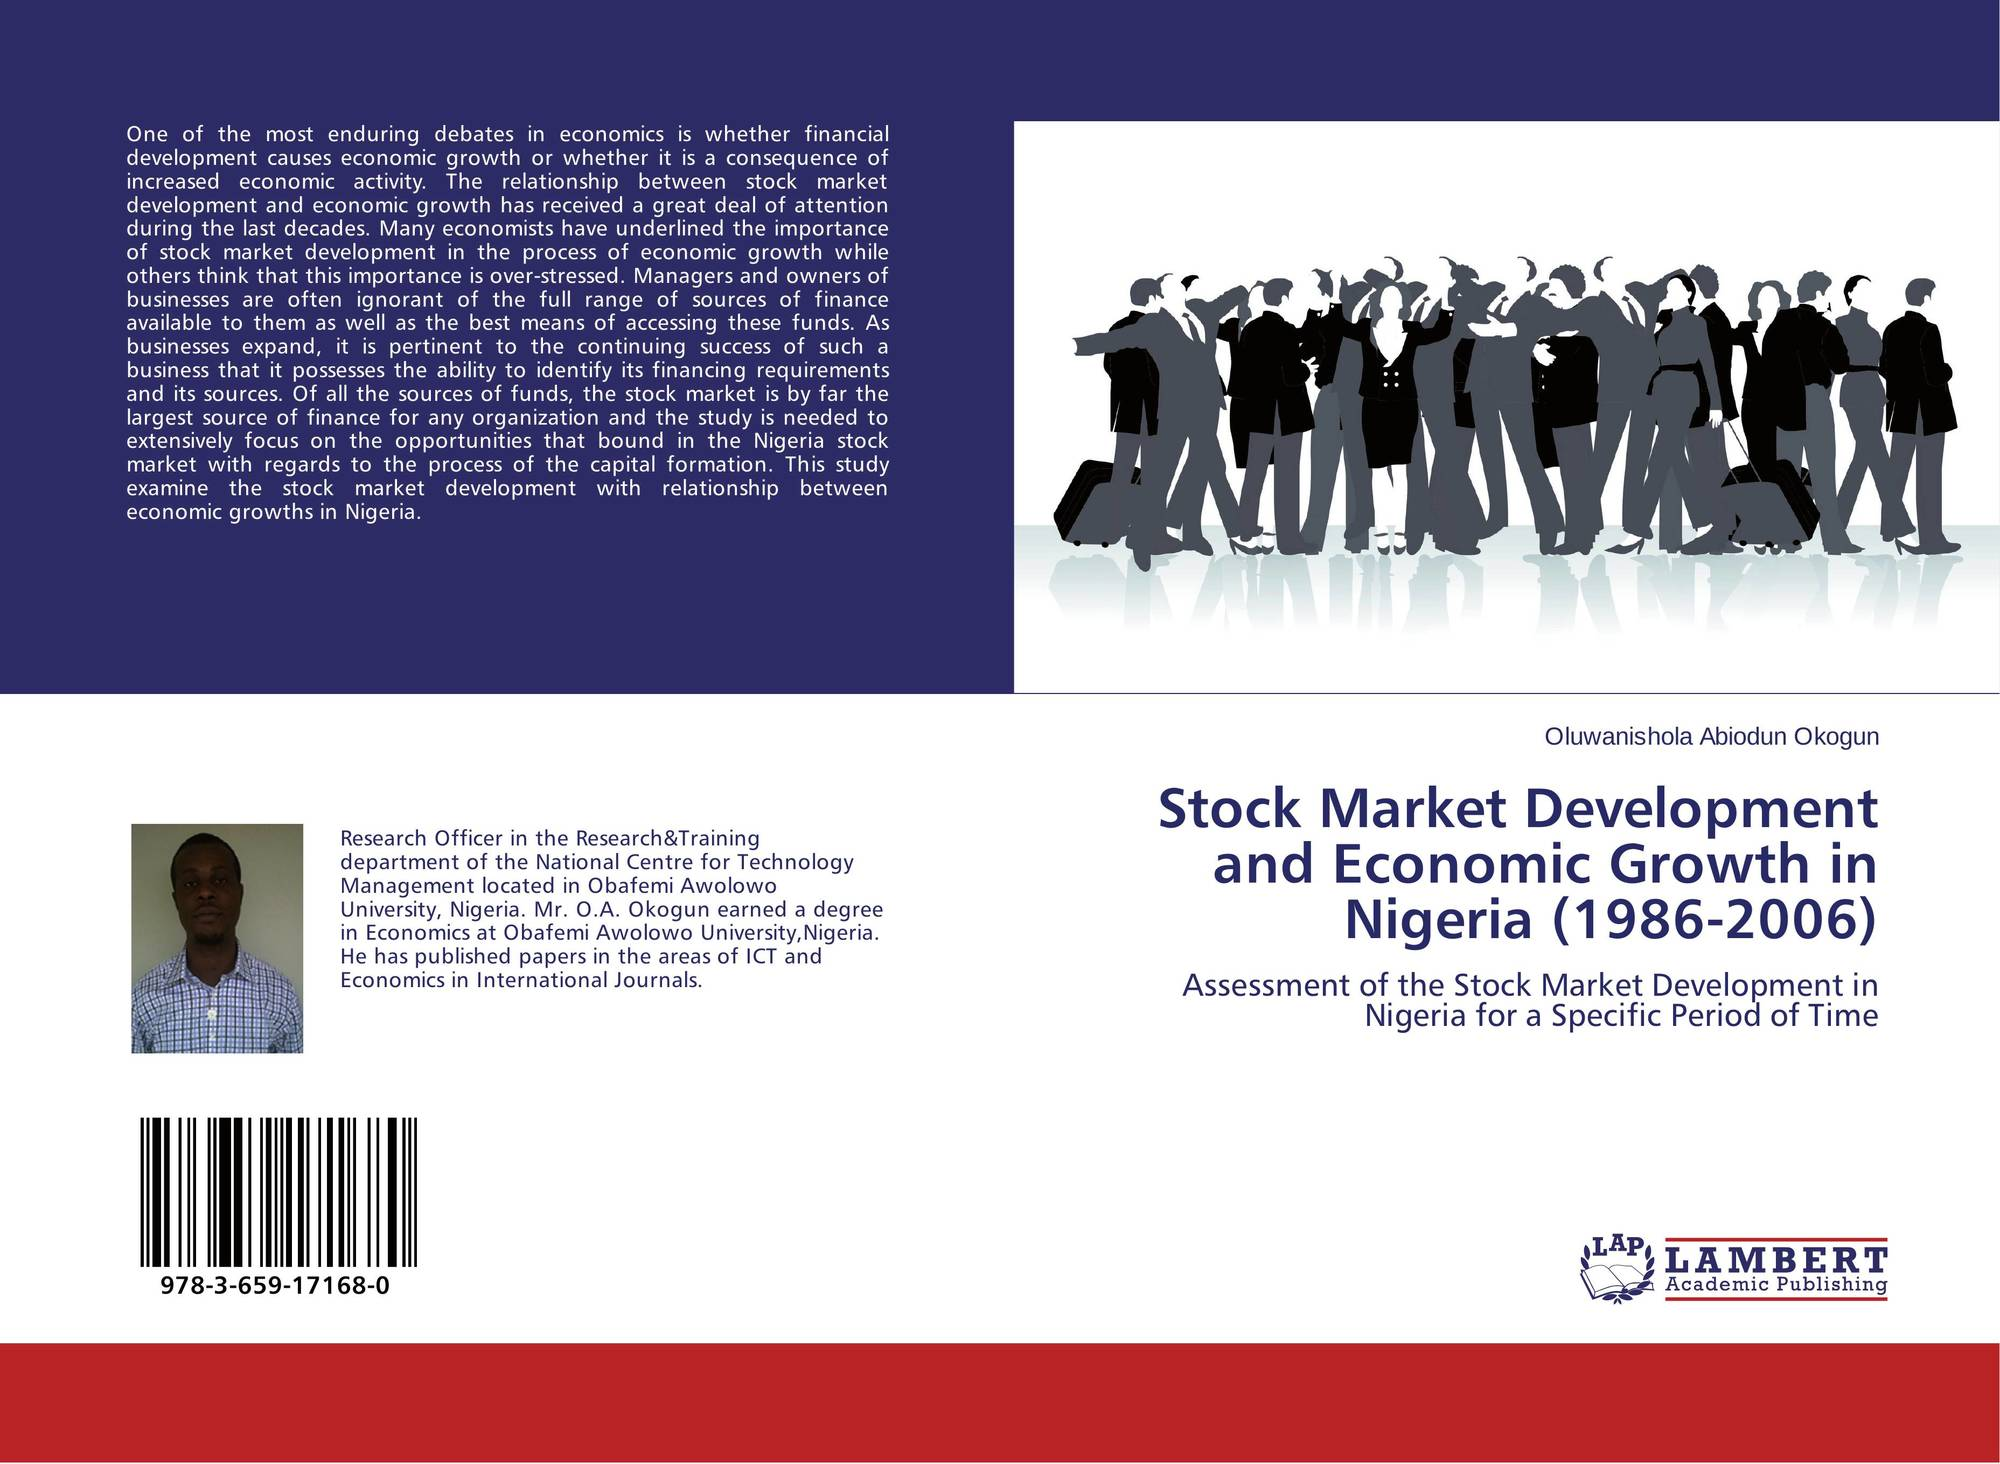 the role of agriculture to economic growth in nigeria Economic diversification in nigeria: any role for  expense of other sectors such as solid minerals and agriculture that  a major contributor to economic growth1.